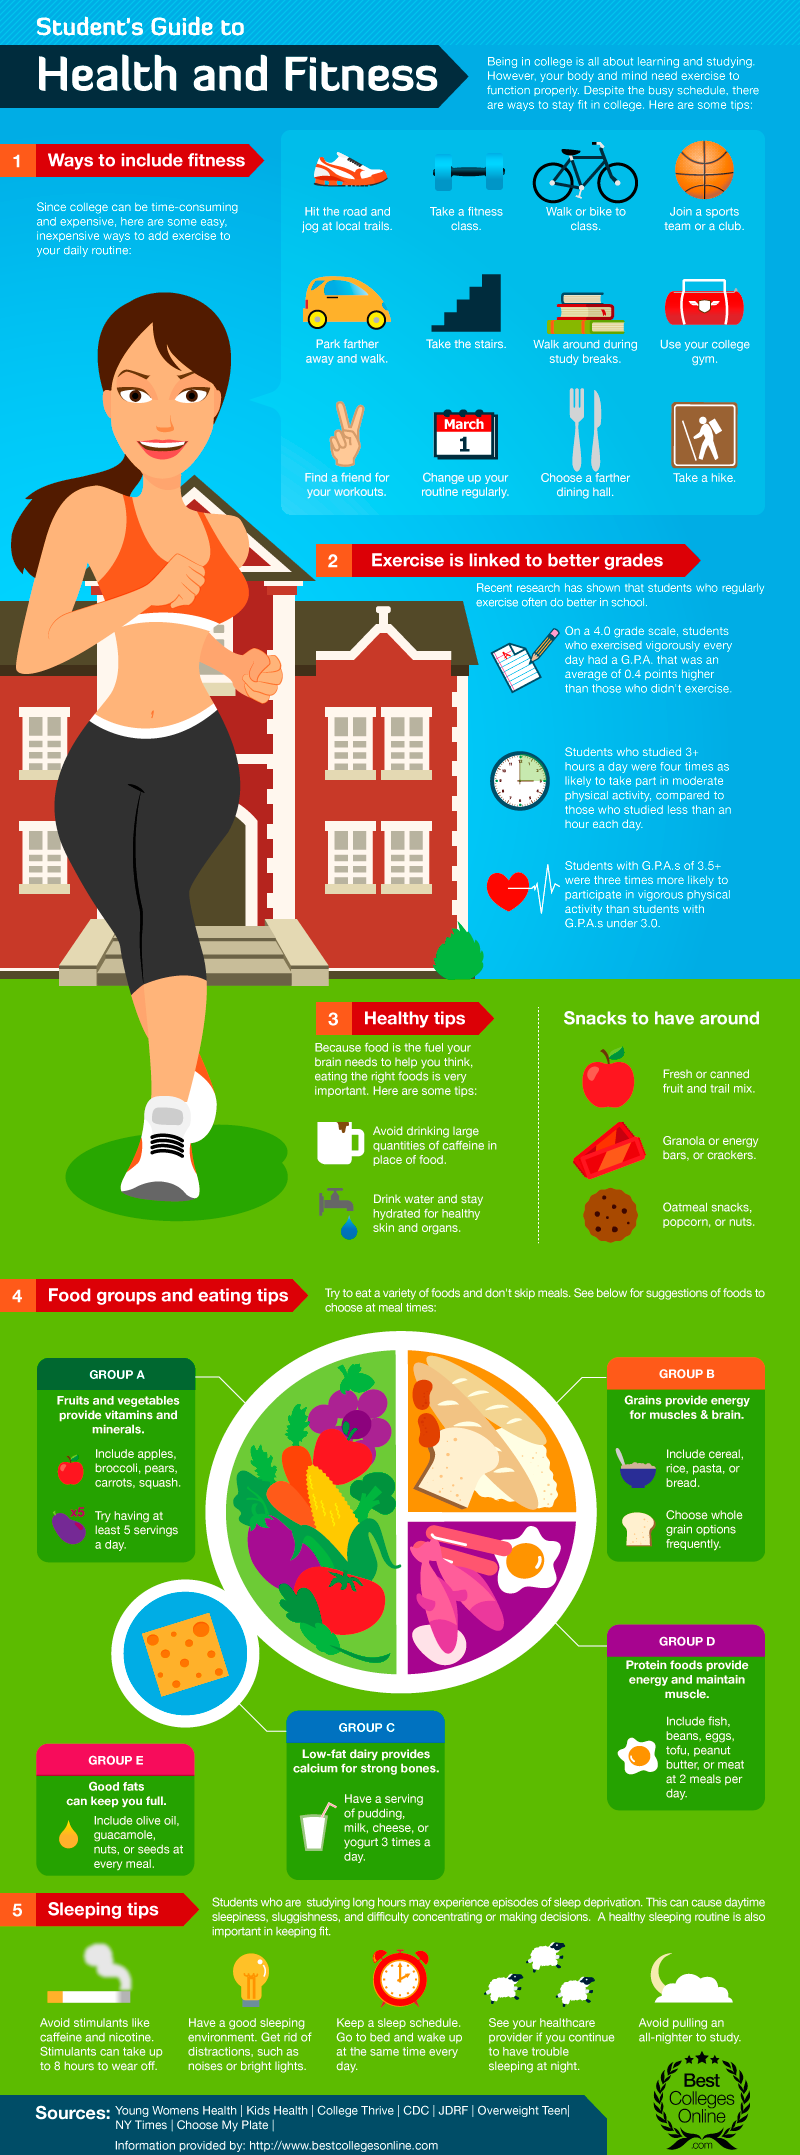 Student's Guide to Health and Fitness